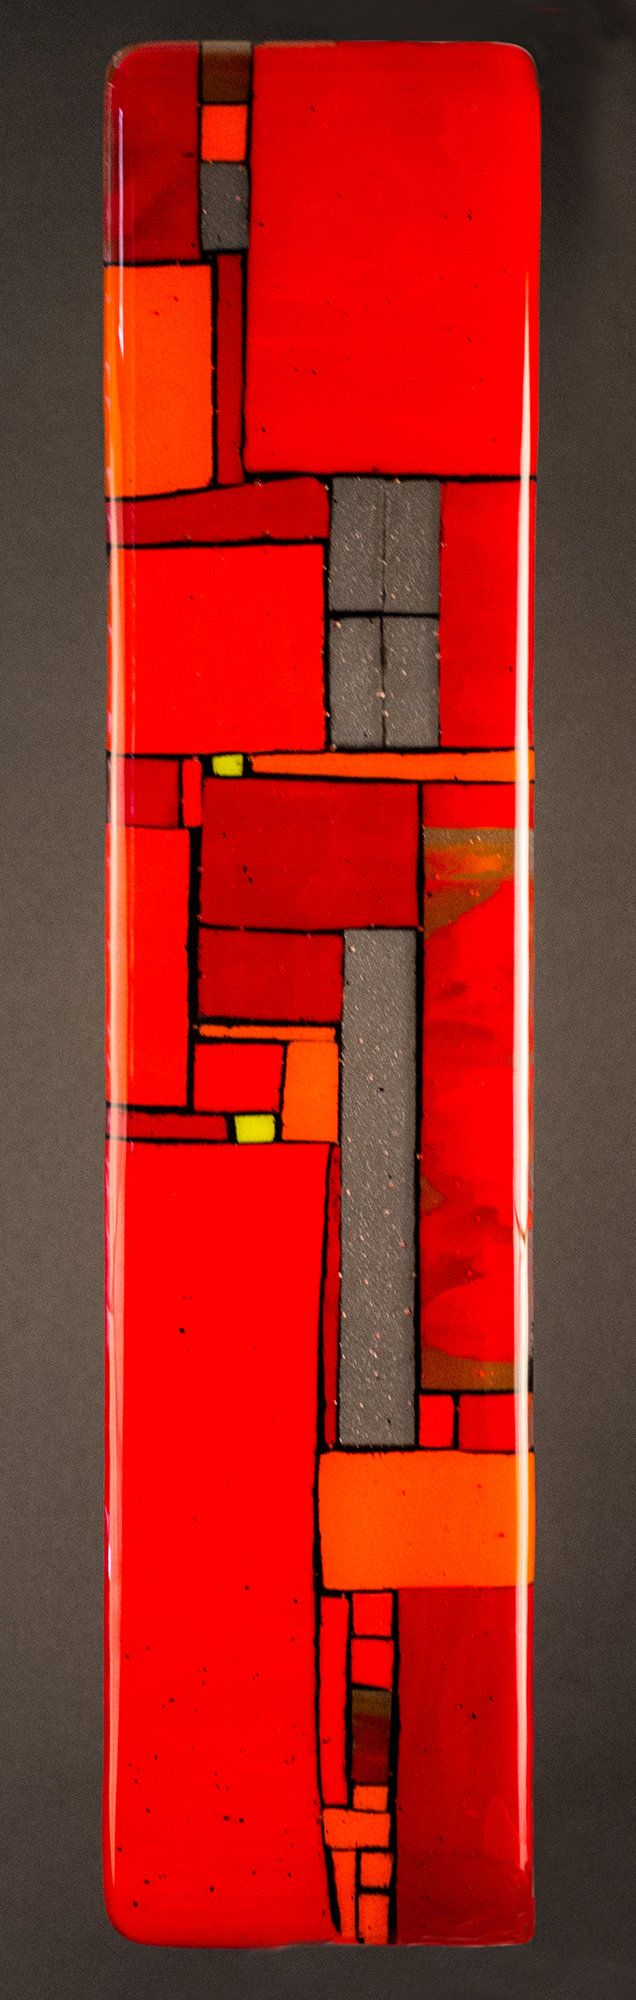 Windows Red - wWall by Meg Branzetti, Vicky Kokolski: Art Glass Wall Art available at www.artfulhome.com